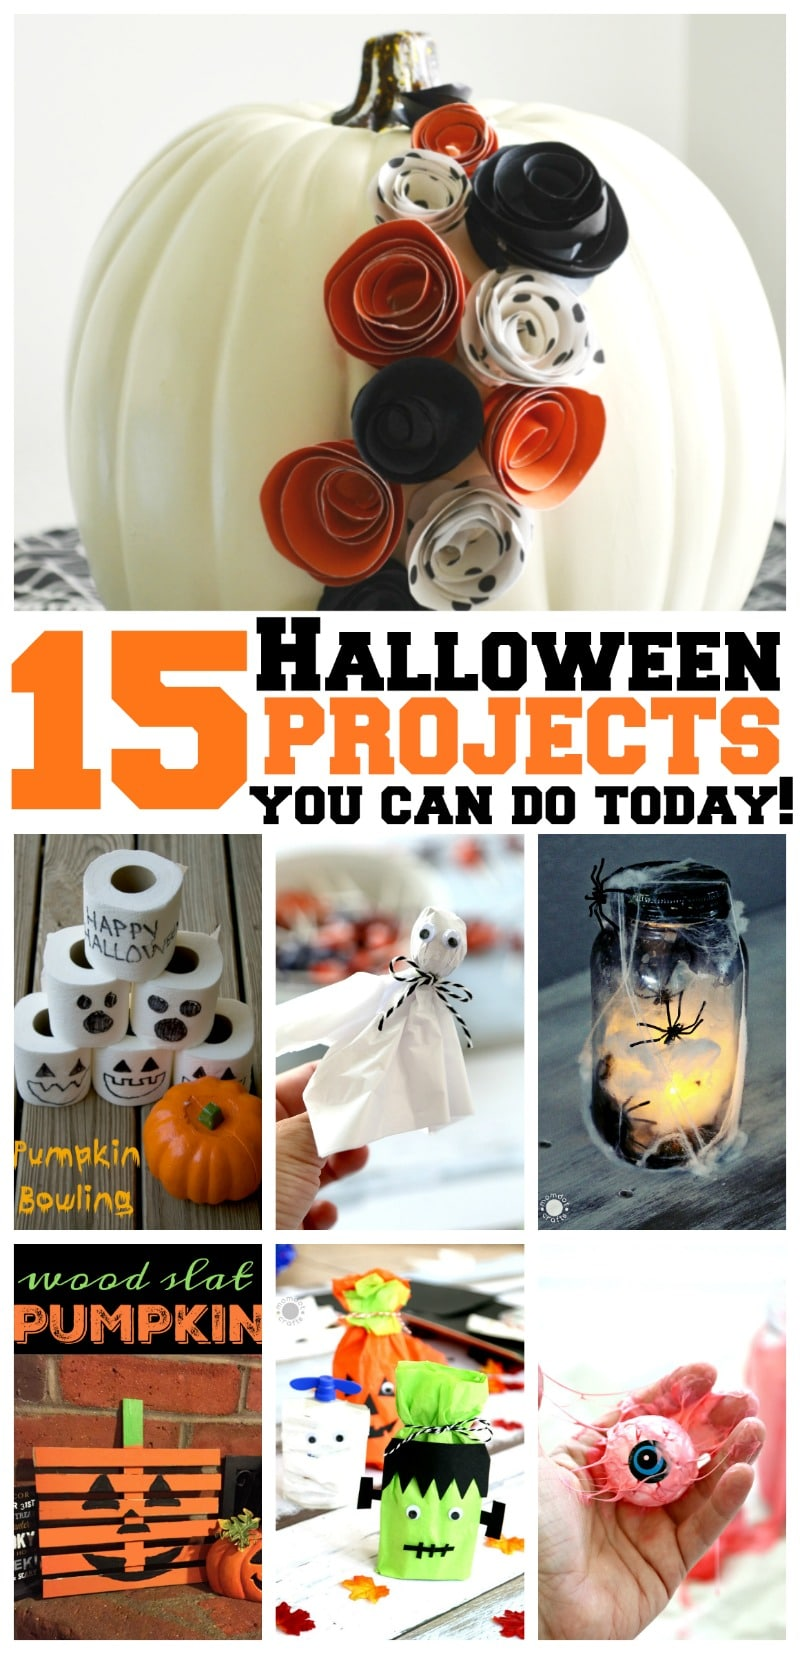 15 Halloween Projects you can do today - easy DIY Halloween ideas that are friendly, fun, and you can complete today